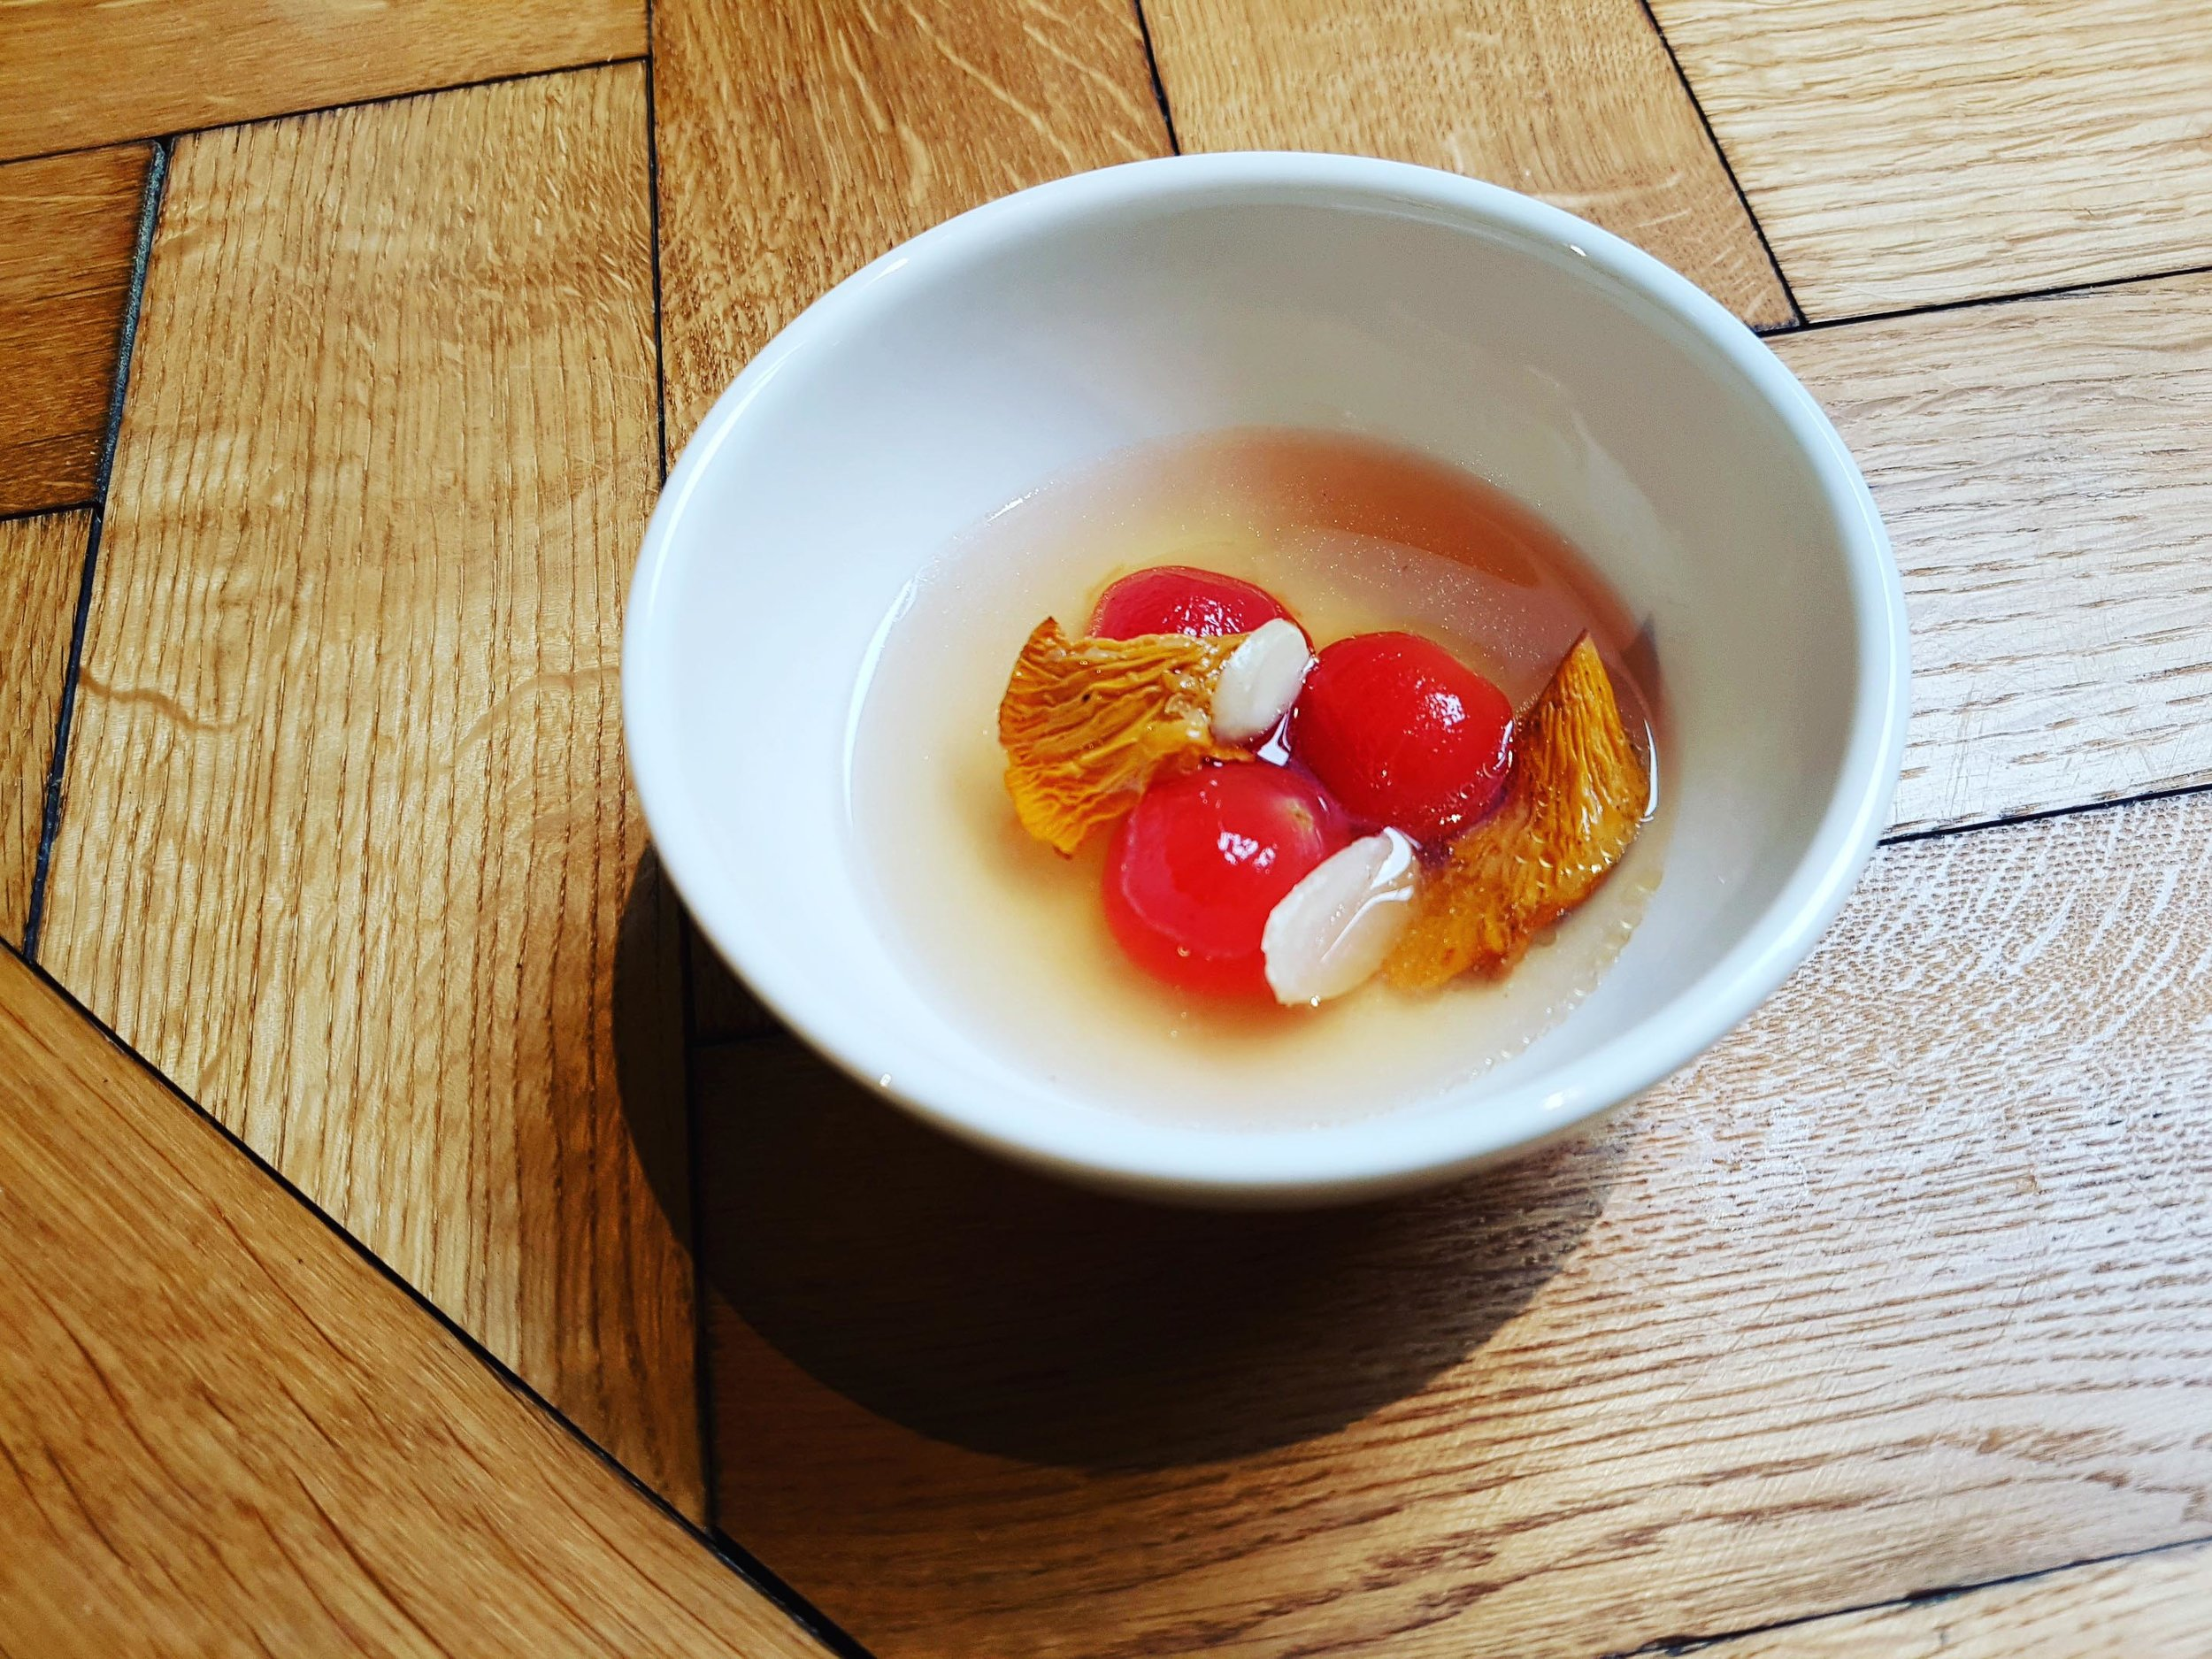 Peeled and semi dried tomatoes, girolles, almonds and bacon broth 'Come Closer' breakfast for Moooi, September